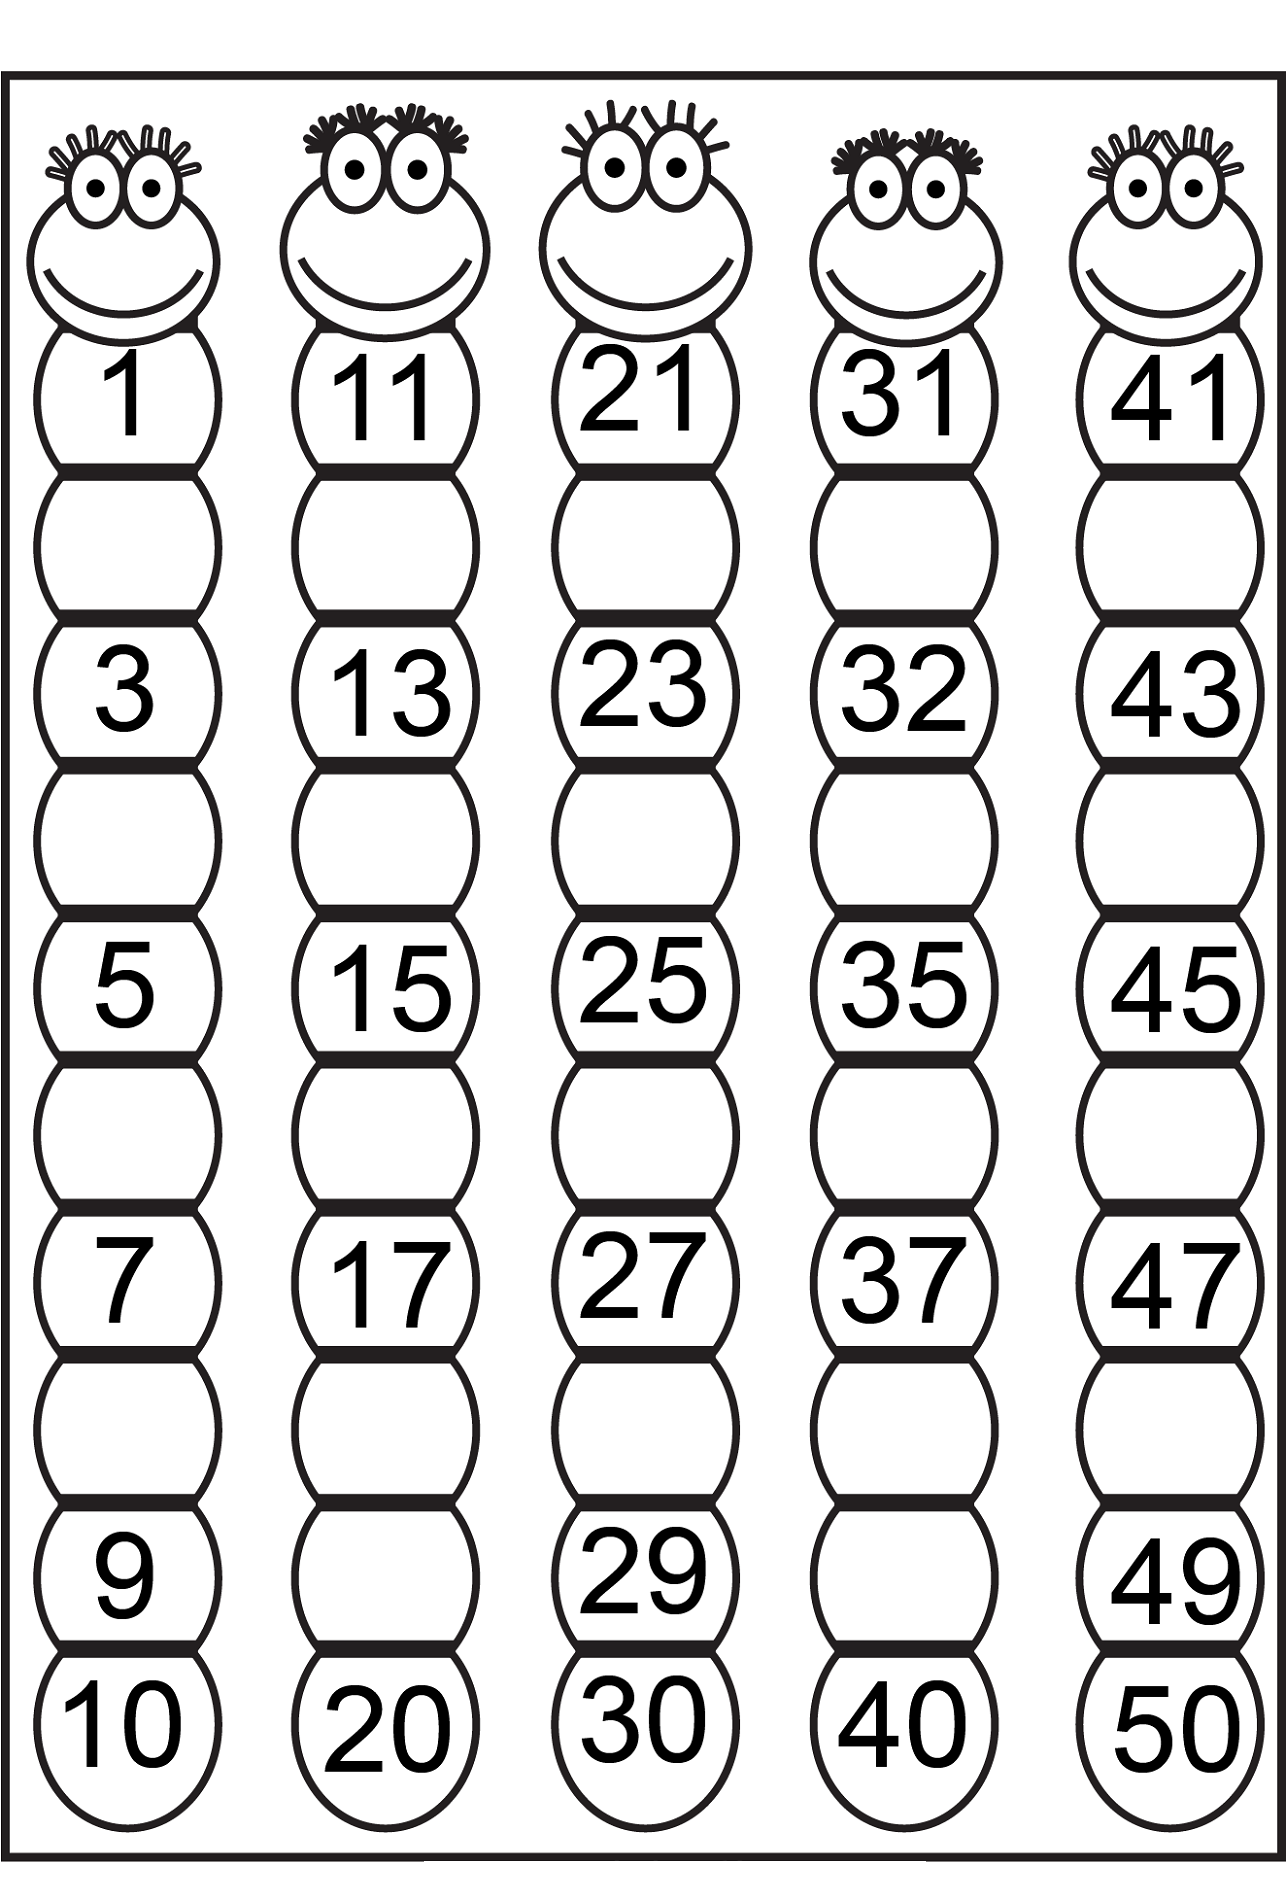 Grade Subtraction Word Problems A together with Count By Twos Worksheet To Print likewise Skip Counting Count Back By And Worksheet Free What  es Before Between After Time In Kinderland Missing Numbers Quarter Maths Number Worksheets Sequencing Half Past Math X also Blank Addition Worksheets Kindergarten Worksheet Missing Number For Free Line Subtraction Math X further Numbers In Words Worksheet Free Printable Worksheets Worksheetfun Tracing Spelling Oo We Yes A Primer Sight Word List Sentences And Kindergarten All Practice Search You Two Am Writing X. on math counting 1 50